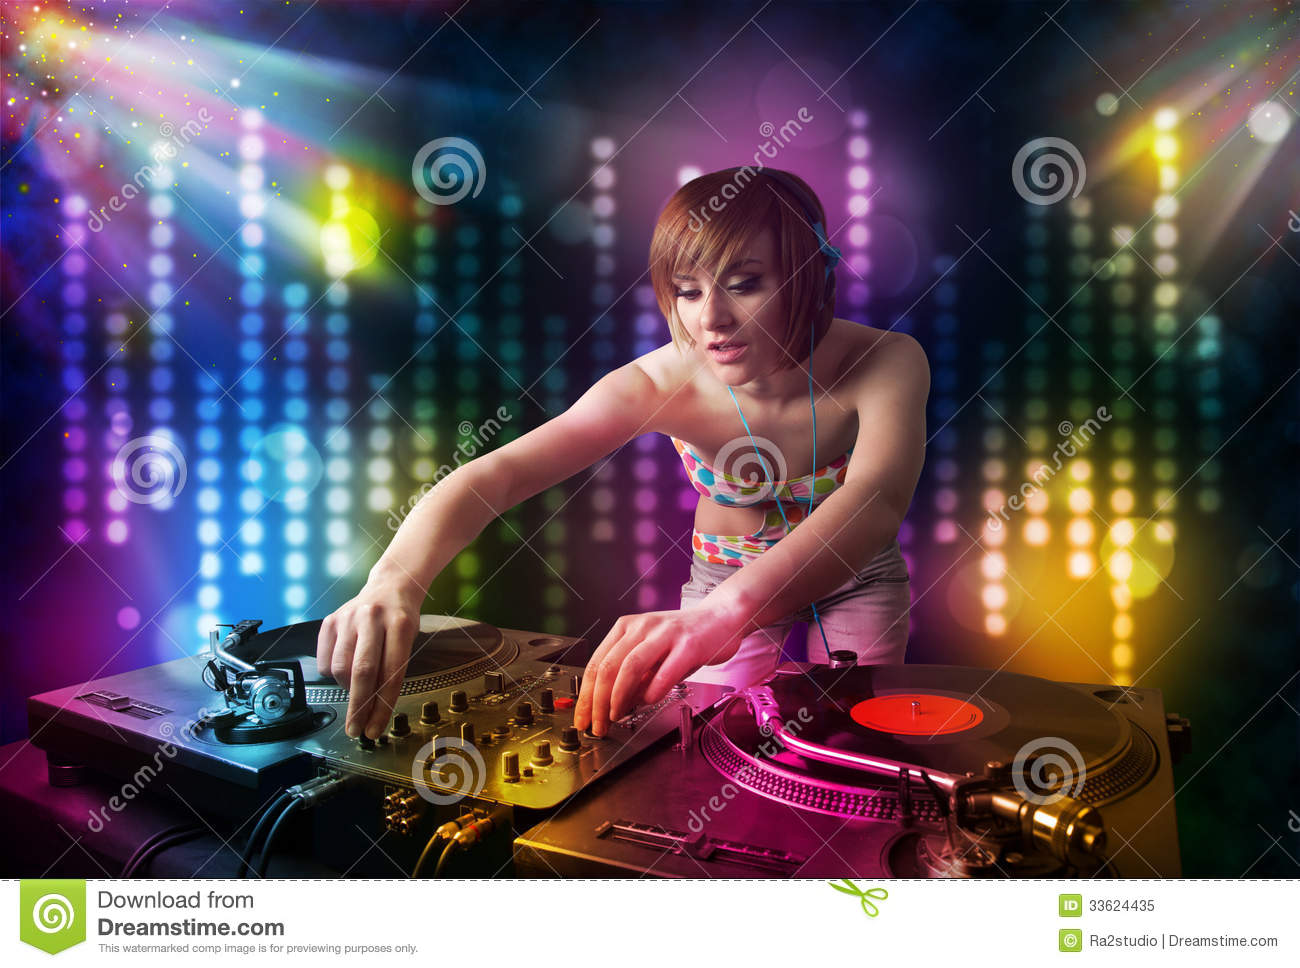 Dj Girl Playing Songs In A Disco With Light Show Stock Illustration Image 33624435